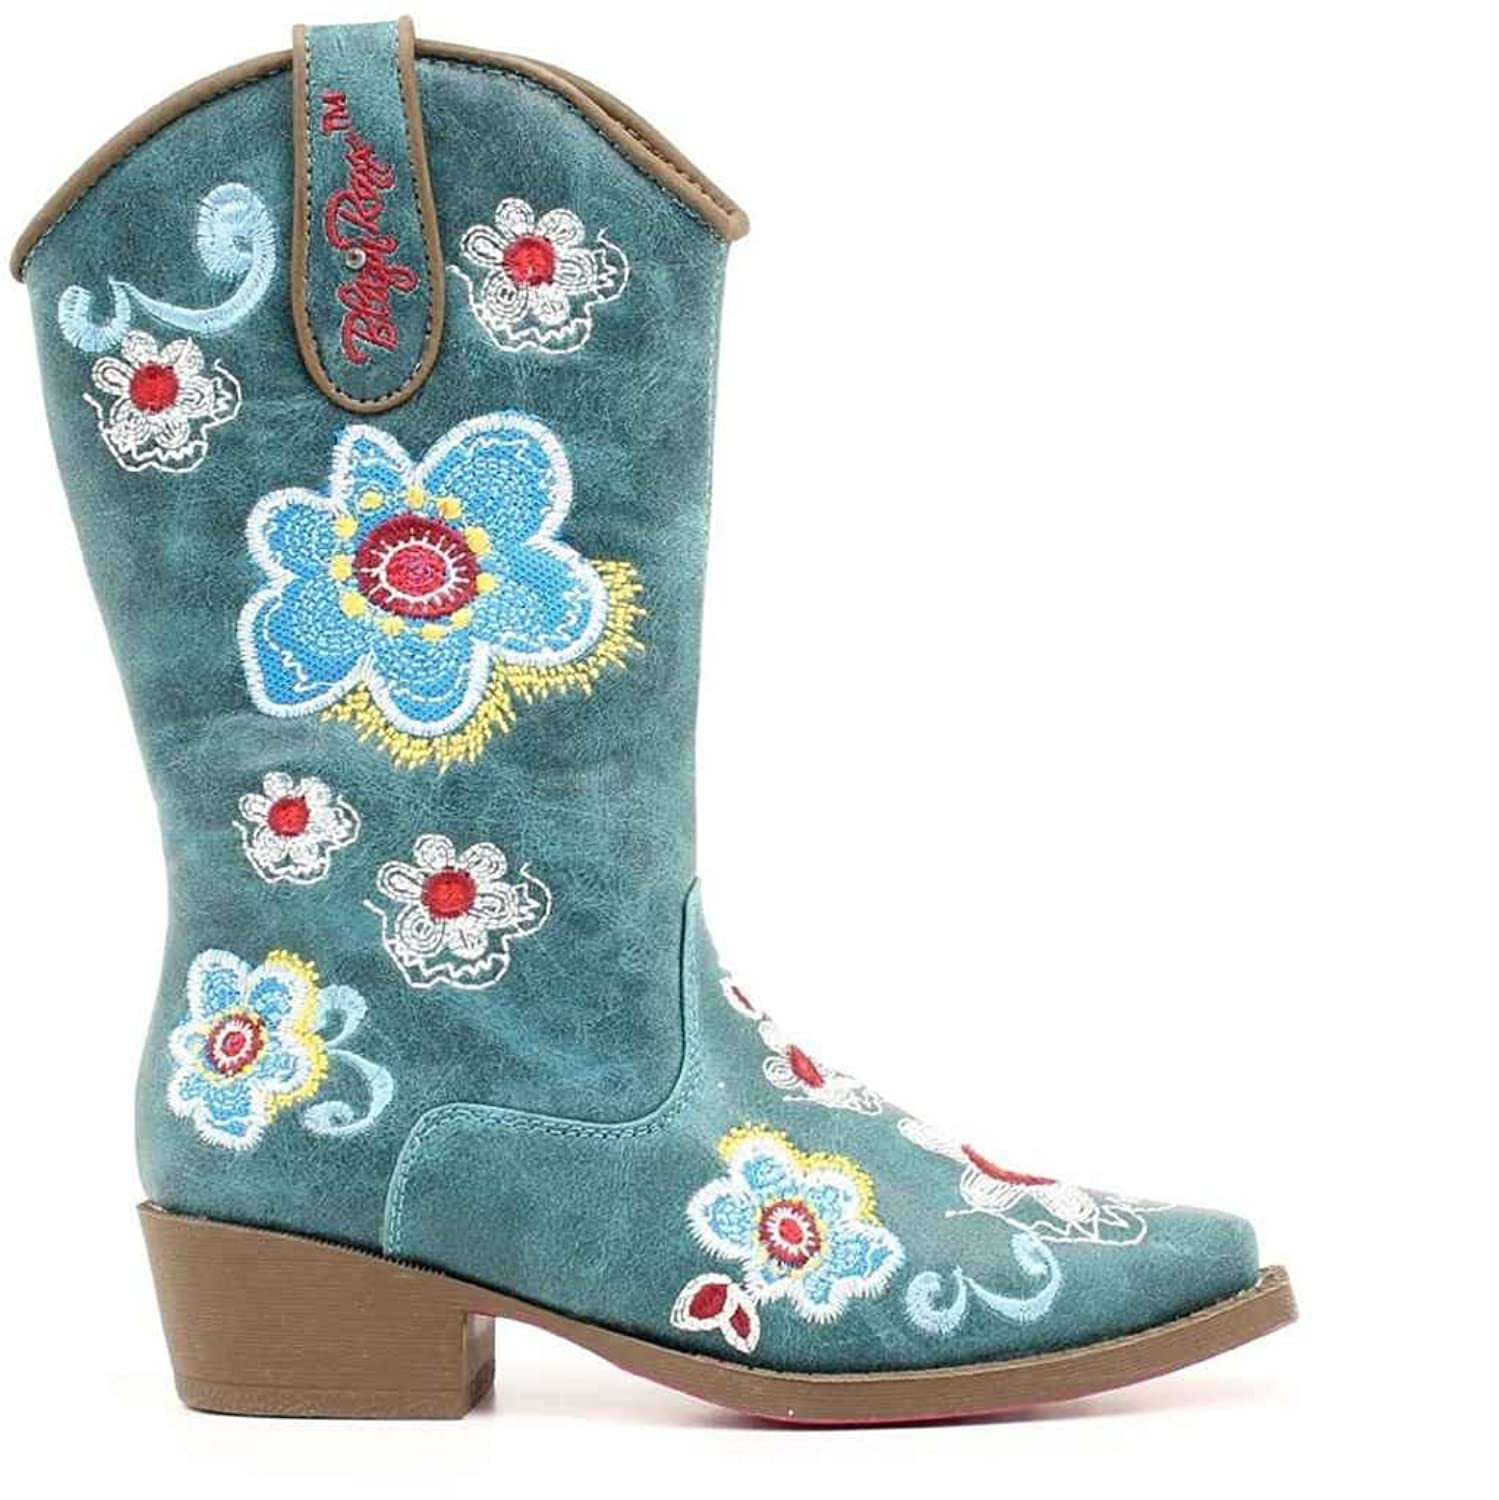 Corral Kid's Brown Floral Embroidered Square Toe Western Boots E1267